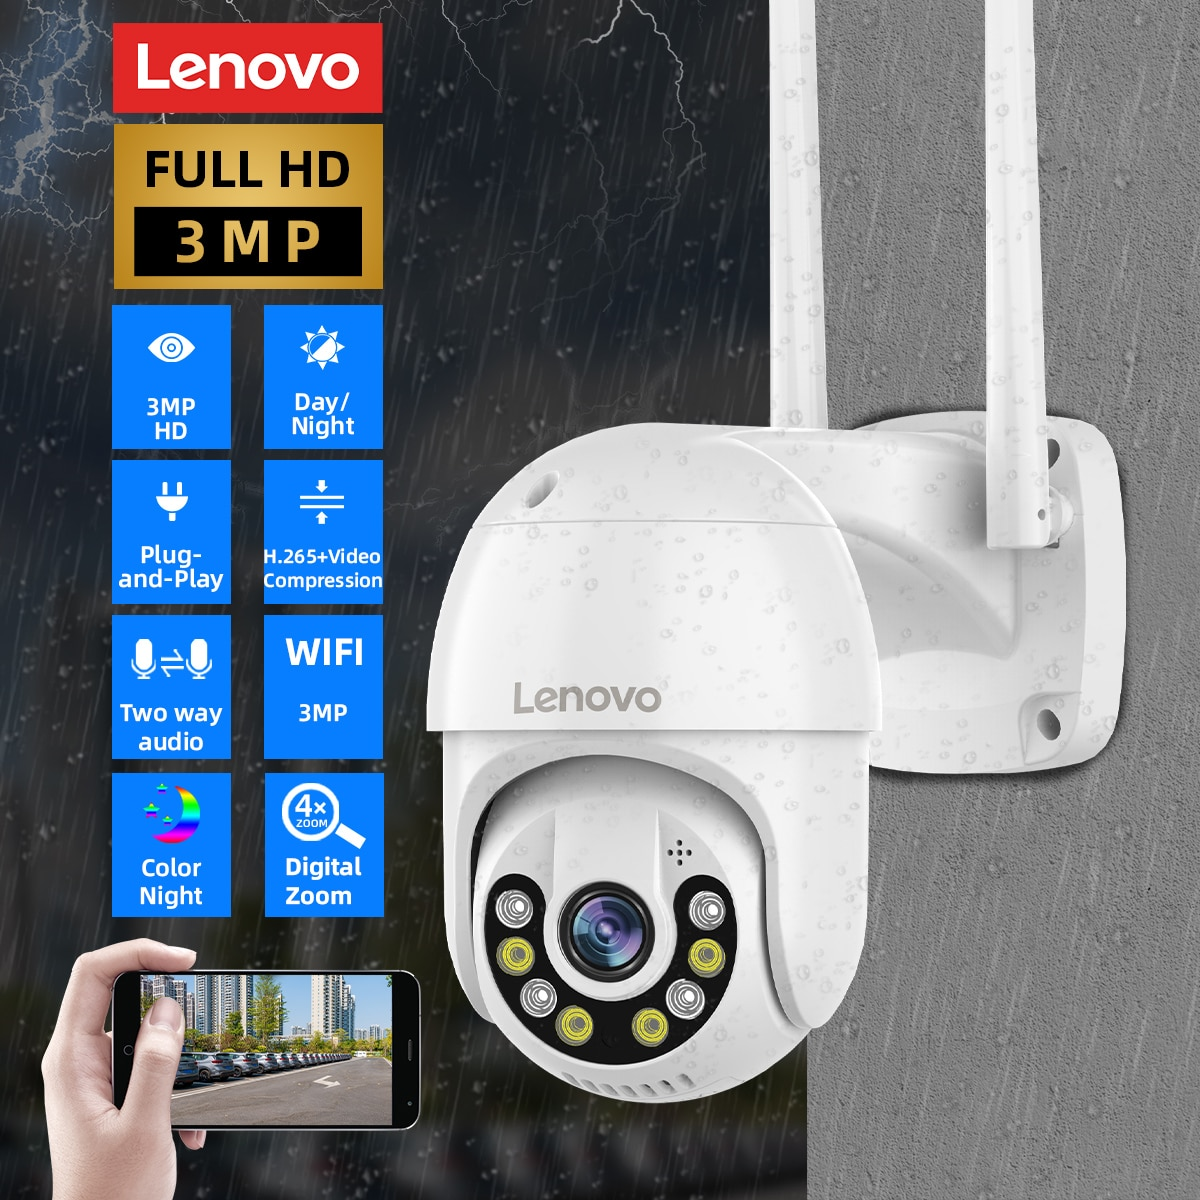 Lenovo 3MP PTZ WIFI IP Camera Outdoor 4X Digital Zoom Night Full Color Wireless H.265 P2P Security CCTV Camera